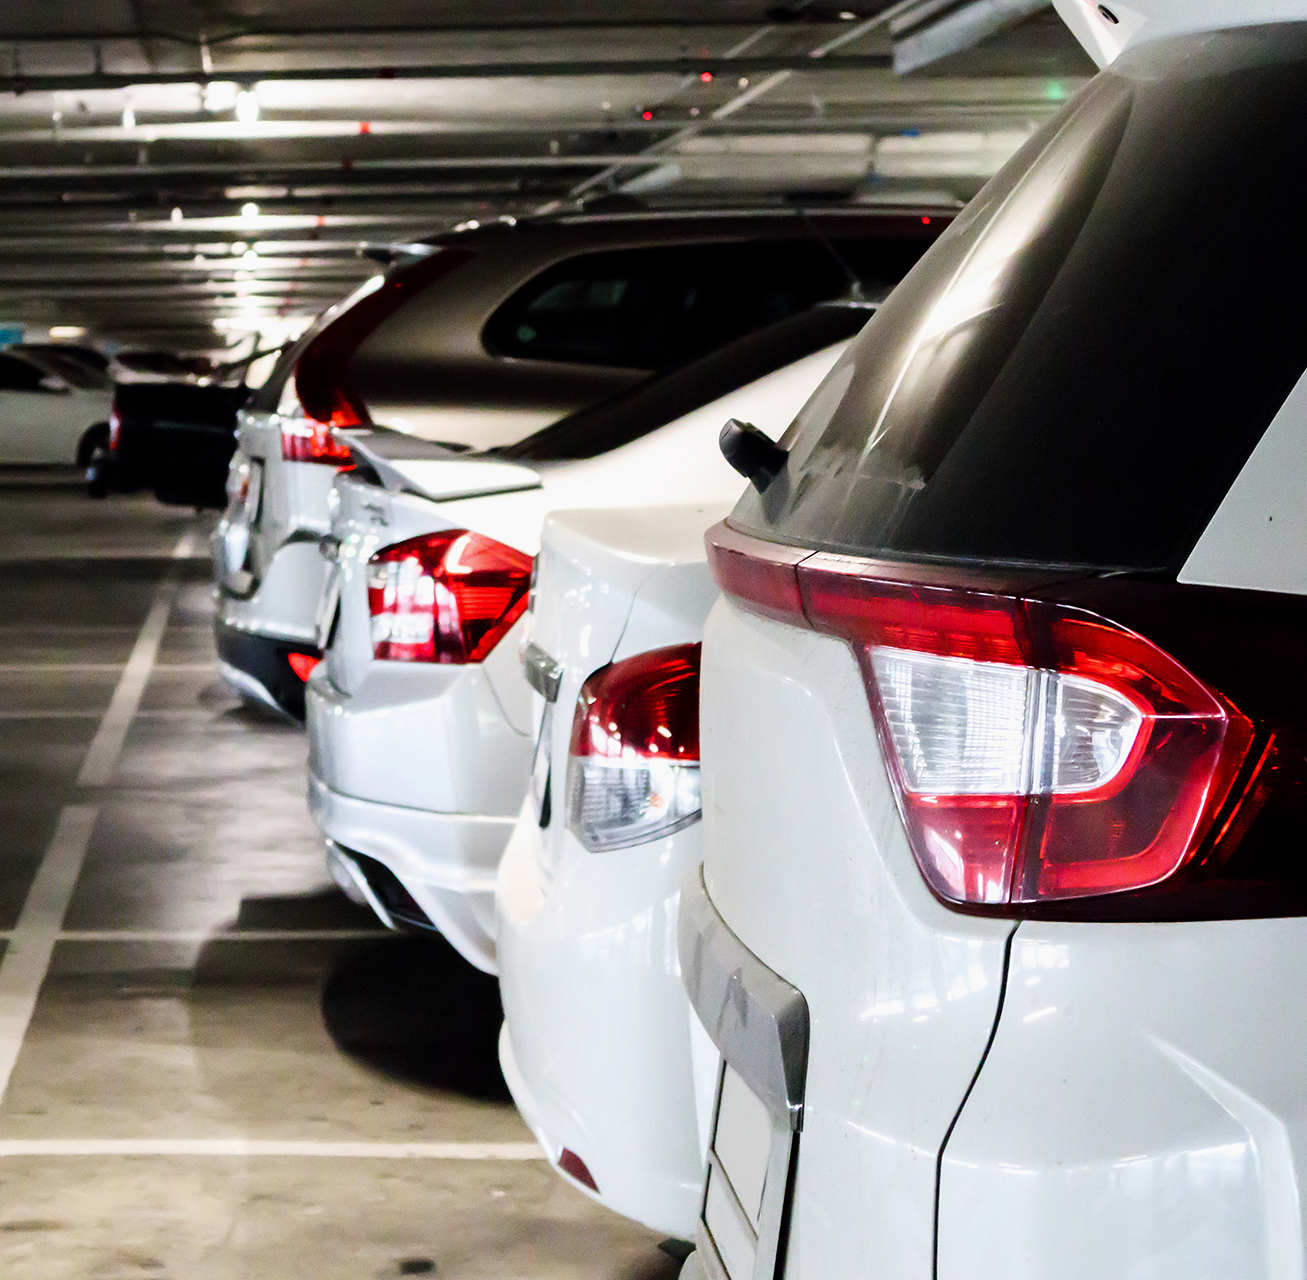 Park & Stay with Free Overnight Valet Parking